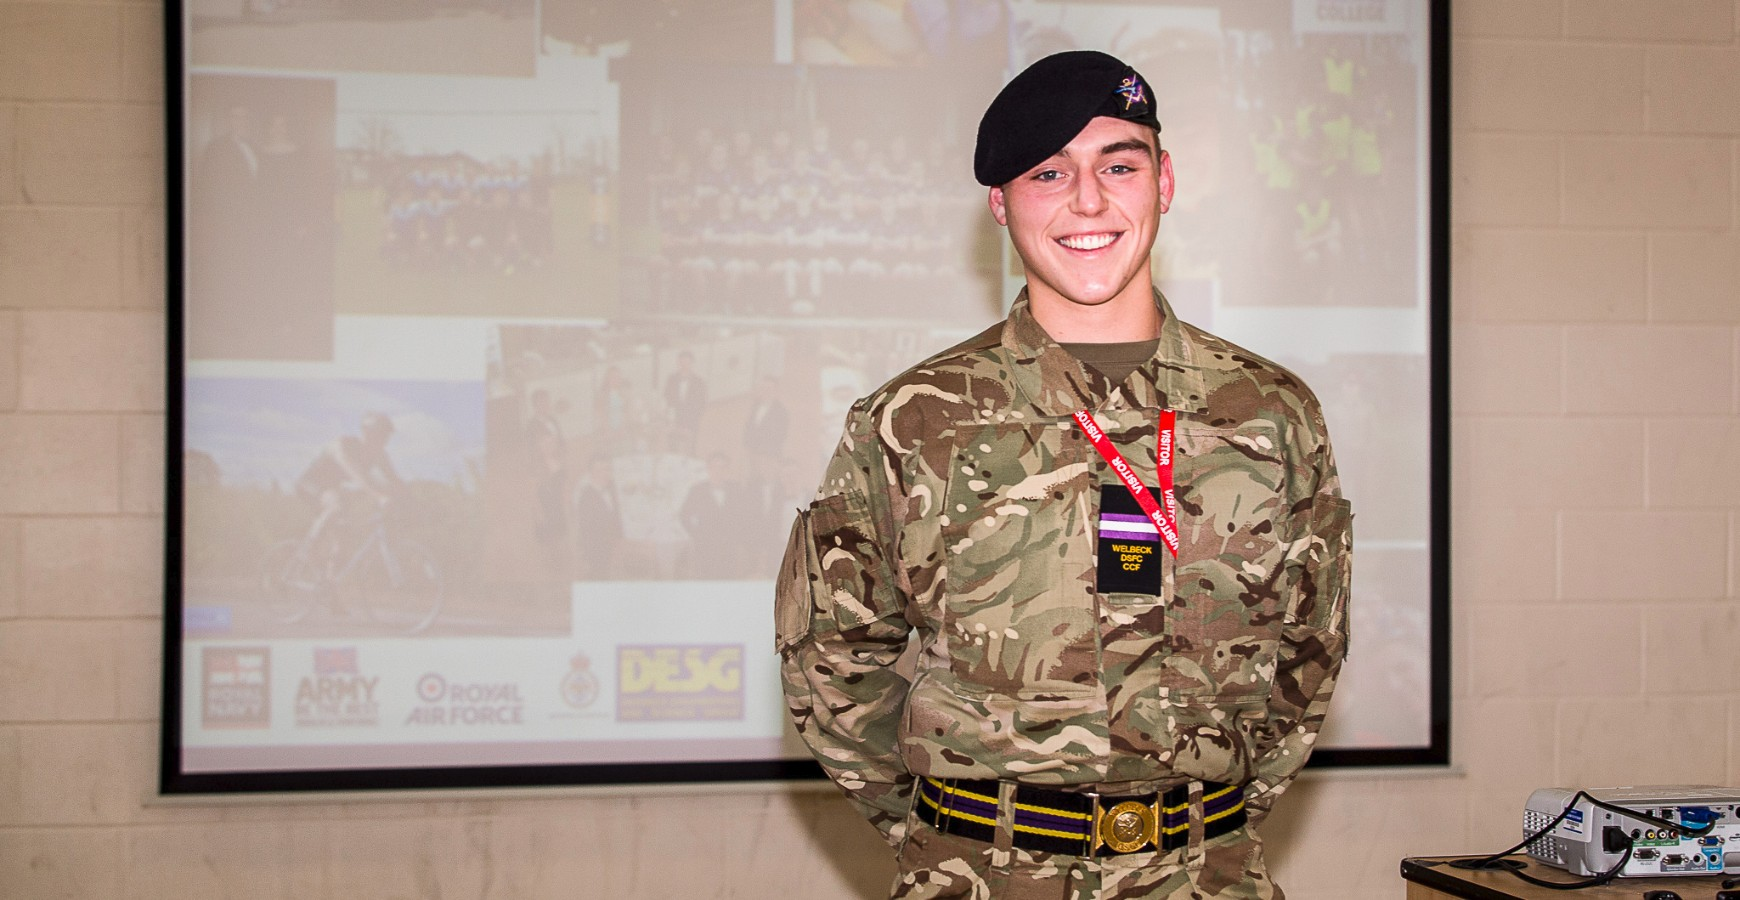 Welbeck and Military Careers Pathway Talk